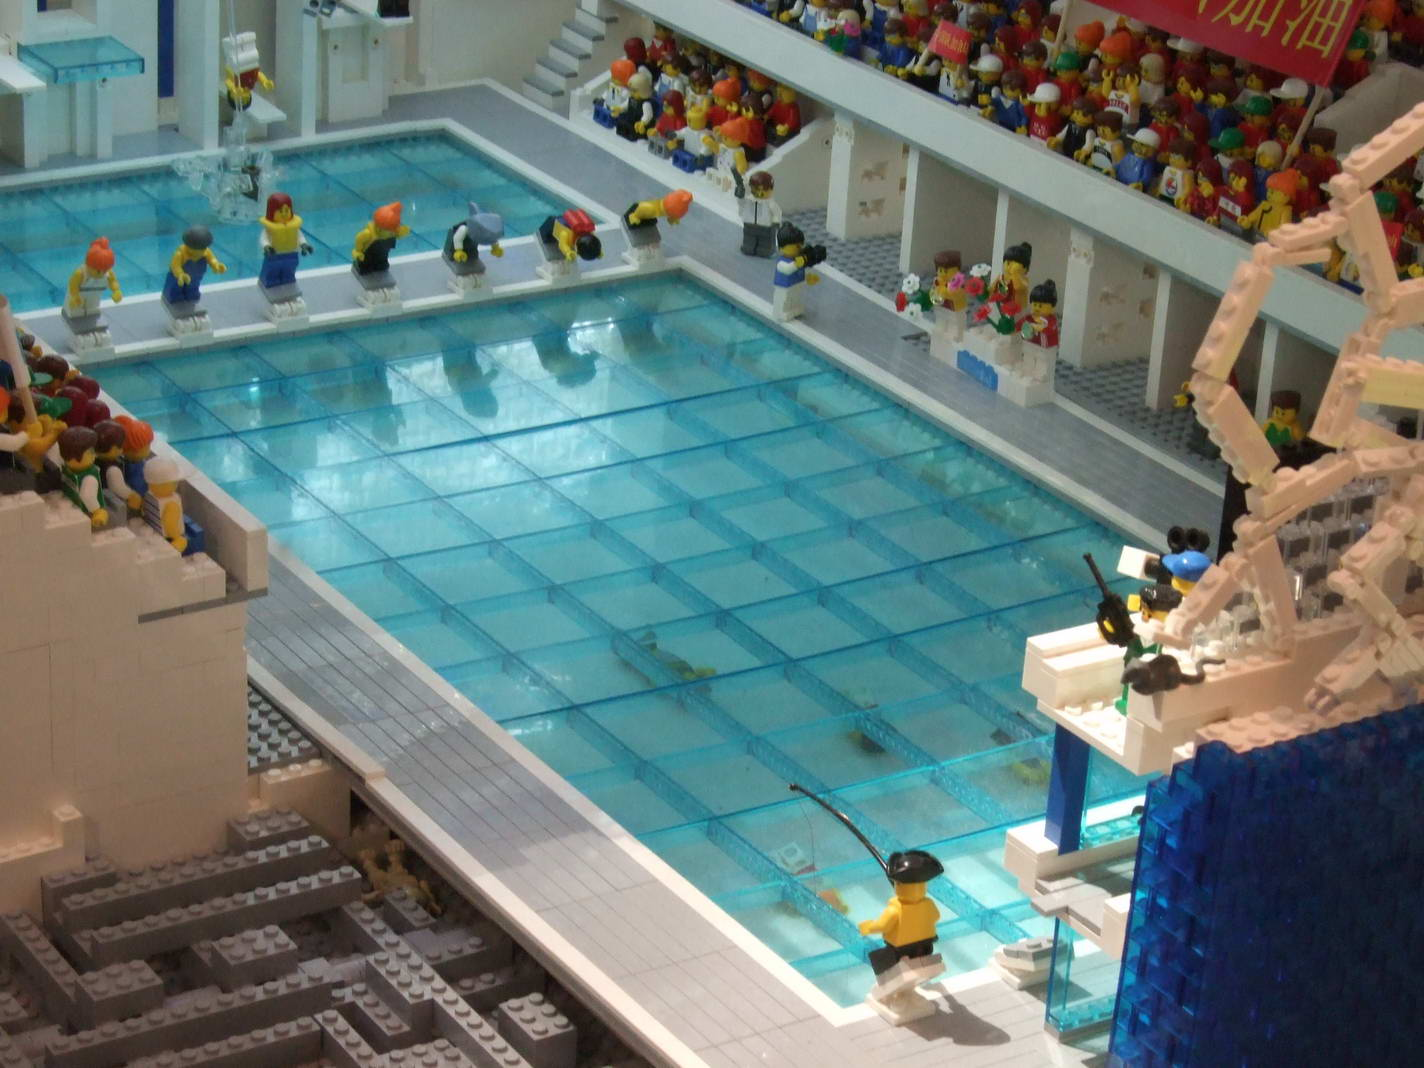 Spotlight beijing architecture lego for Pool design jobs